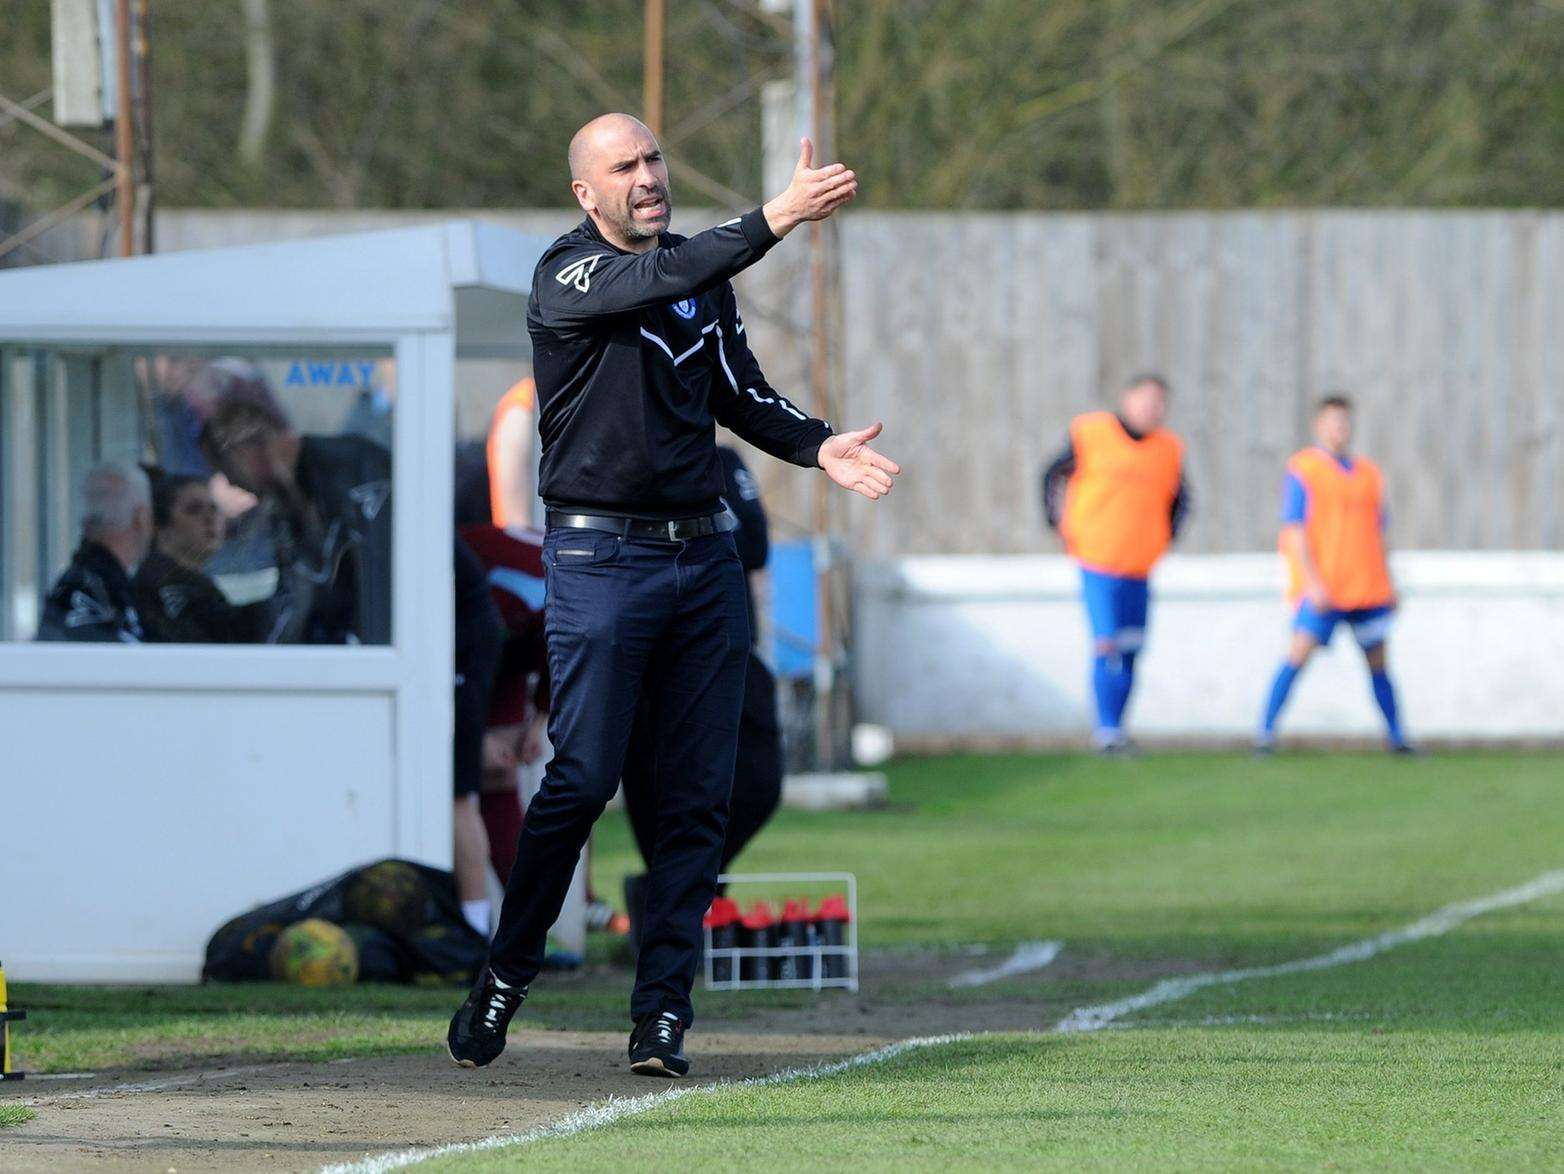 CUP HOPES: Bury Town manager Ben Chenery believes his side can embrace the underdogs tag